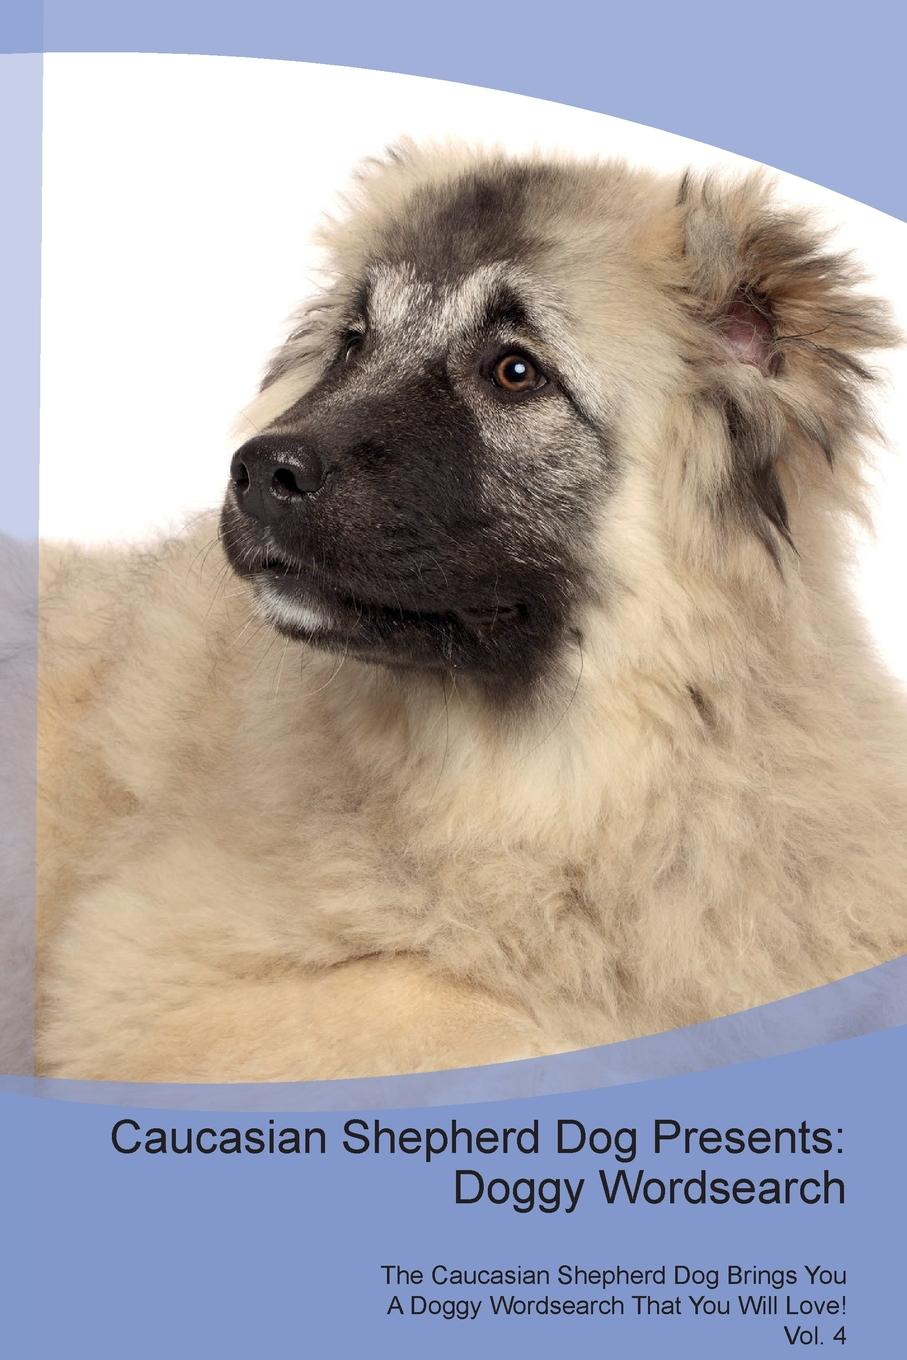 Doggy Puzzles Caucasian Shepherd Dog Presents. Wordsearch The Brings You A That Will Love! Vol. 4